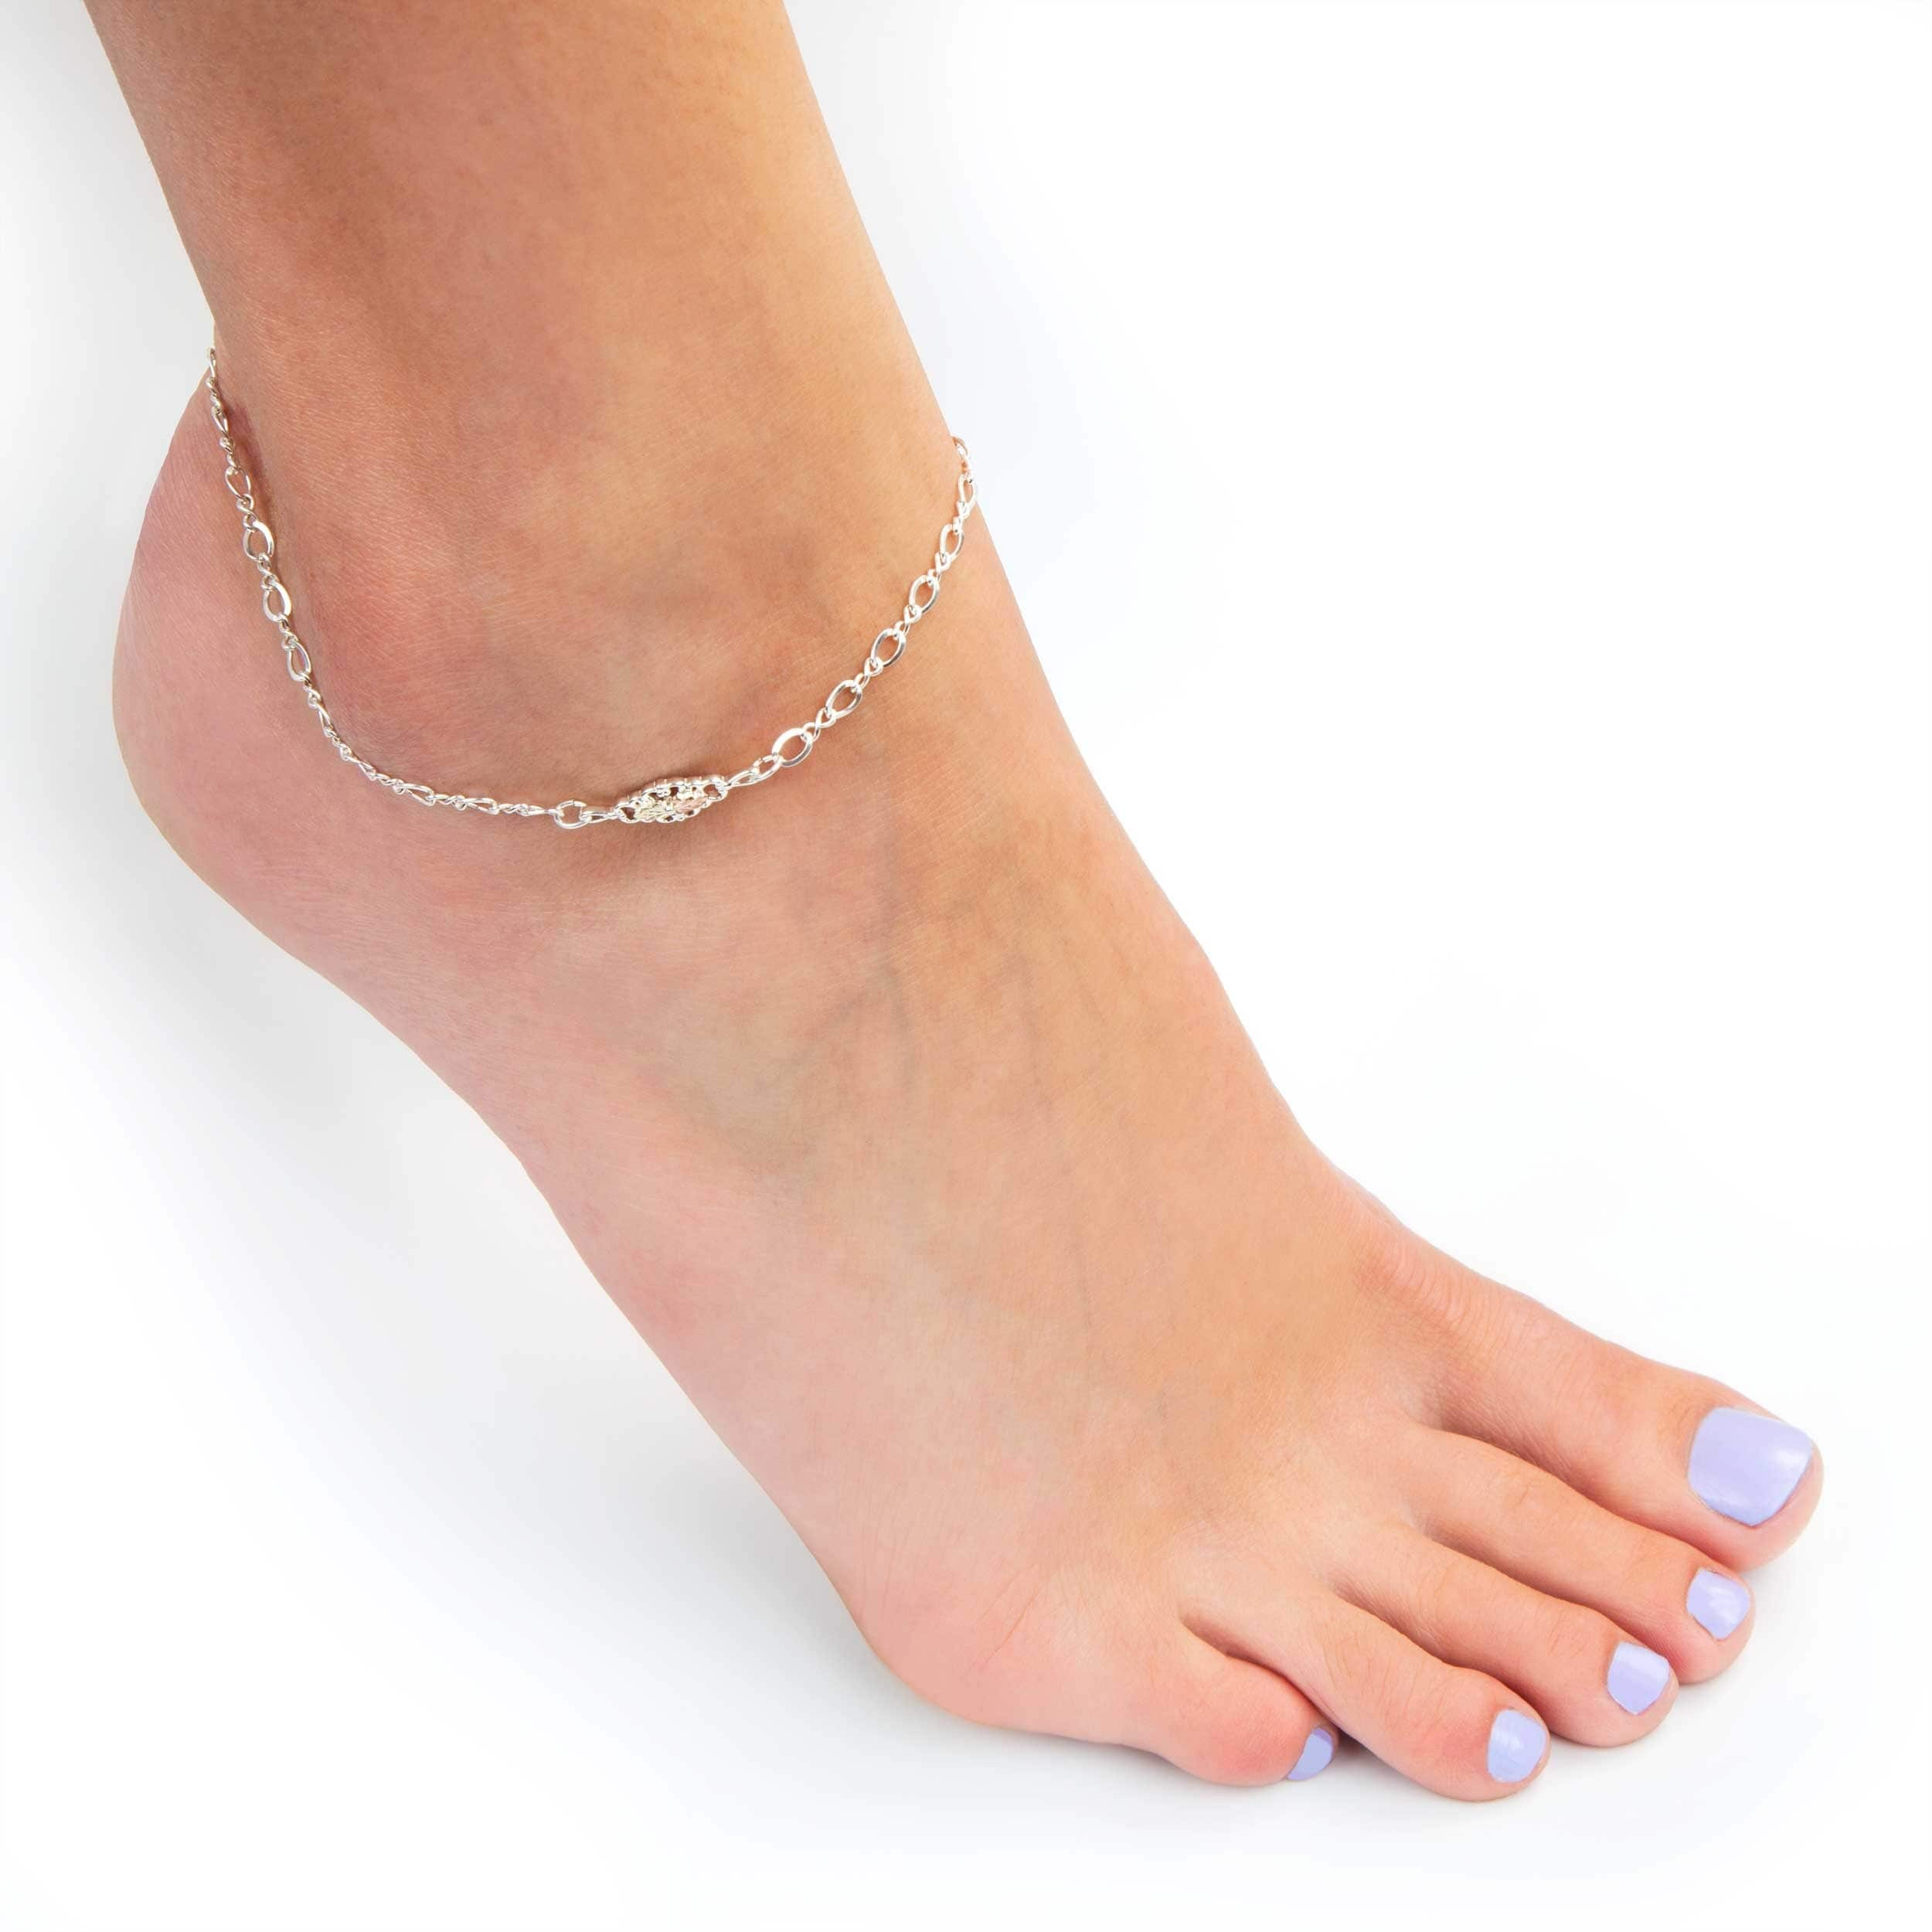 ankle women emmacloth strap p cat gold sandals fast anklet online flat pictures fashion